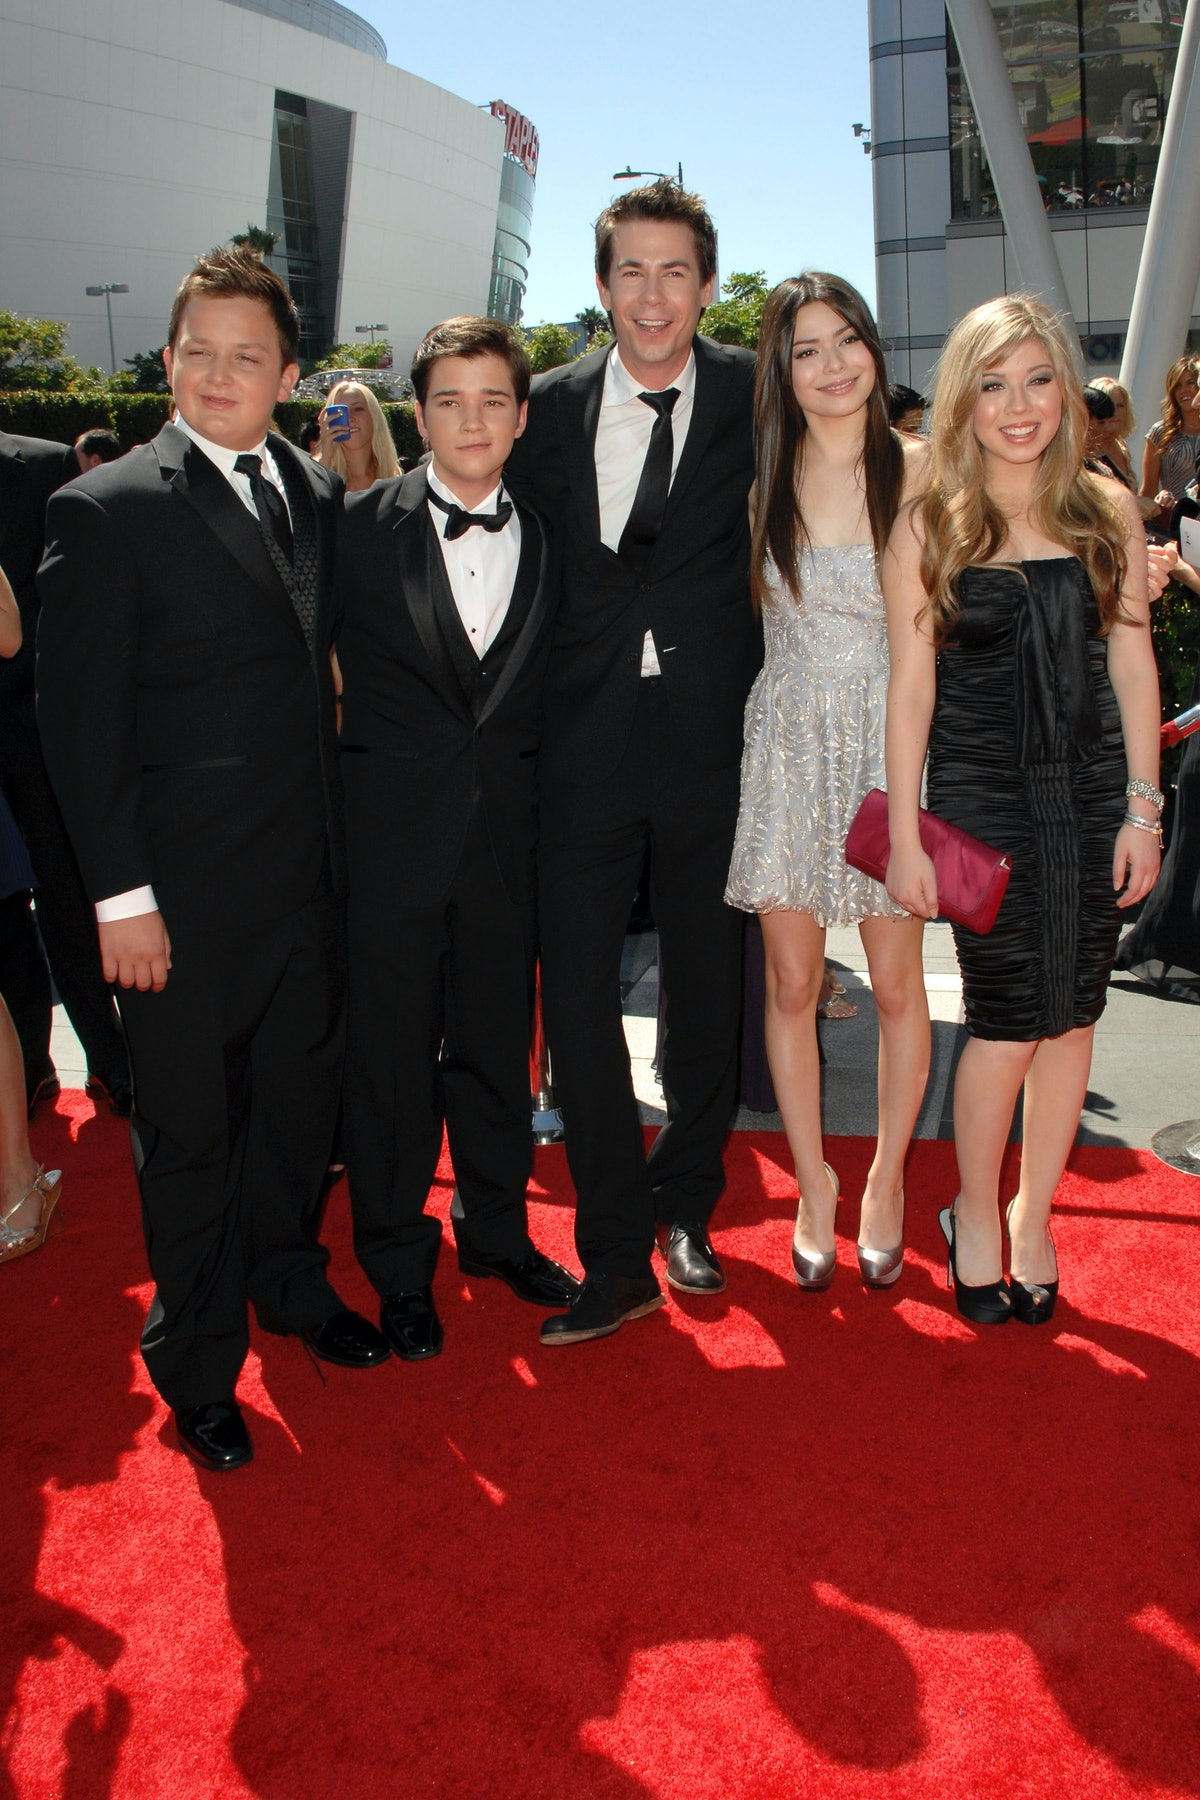 LOS ANGELES, CA - AUGUST 21: iCarly Cast attends 62nd Primetime Creative Arts Emmy Awards at Nokia T...